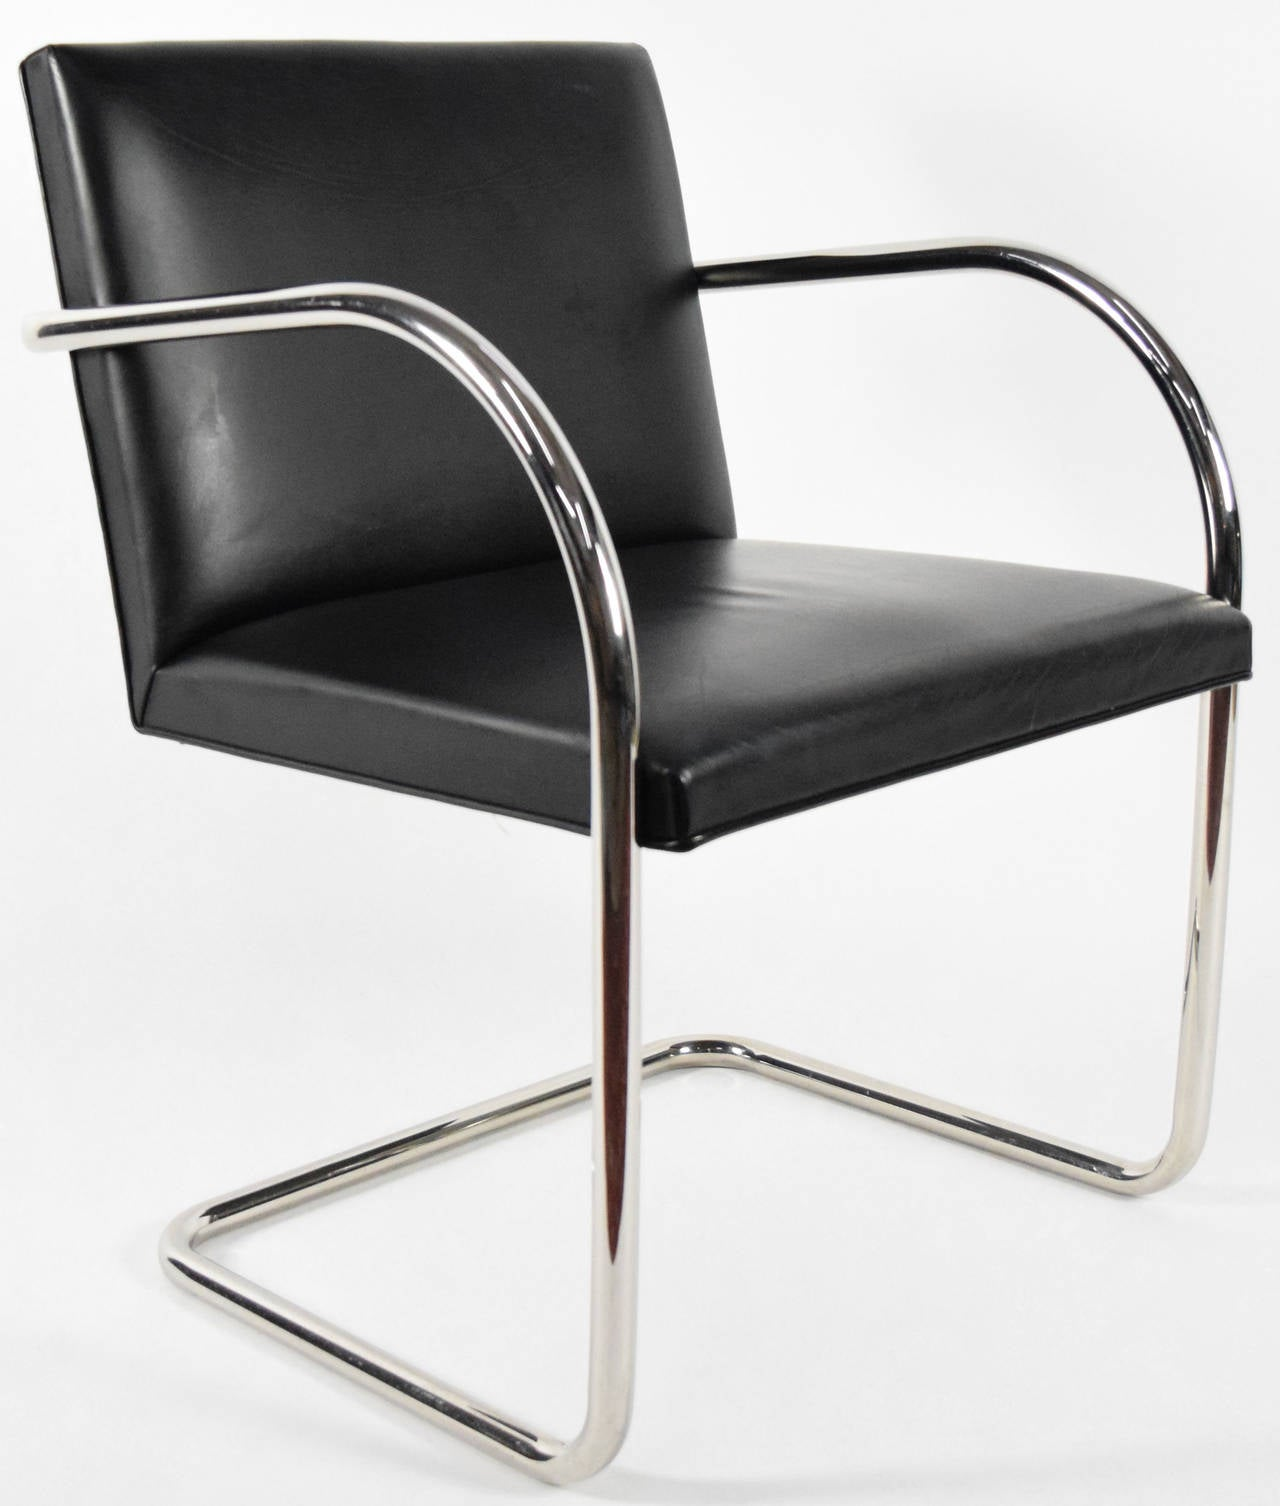 fourteen tubular brno chairs by mies van der rohe for knoll at 1stdibs. Black Bedroom Furniture Sets. Home Design Ideas